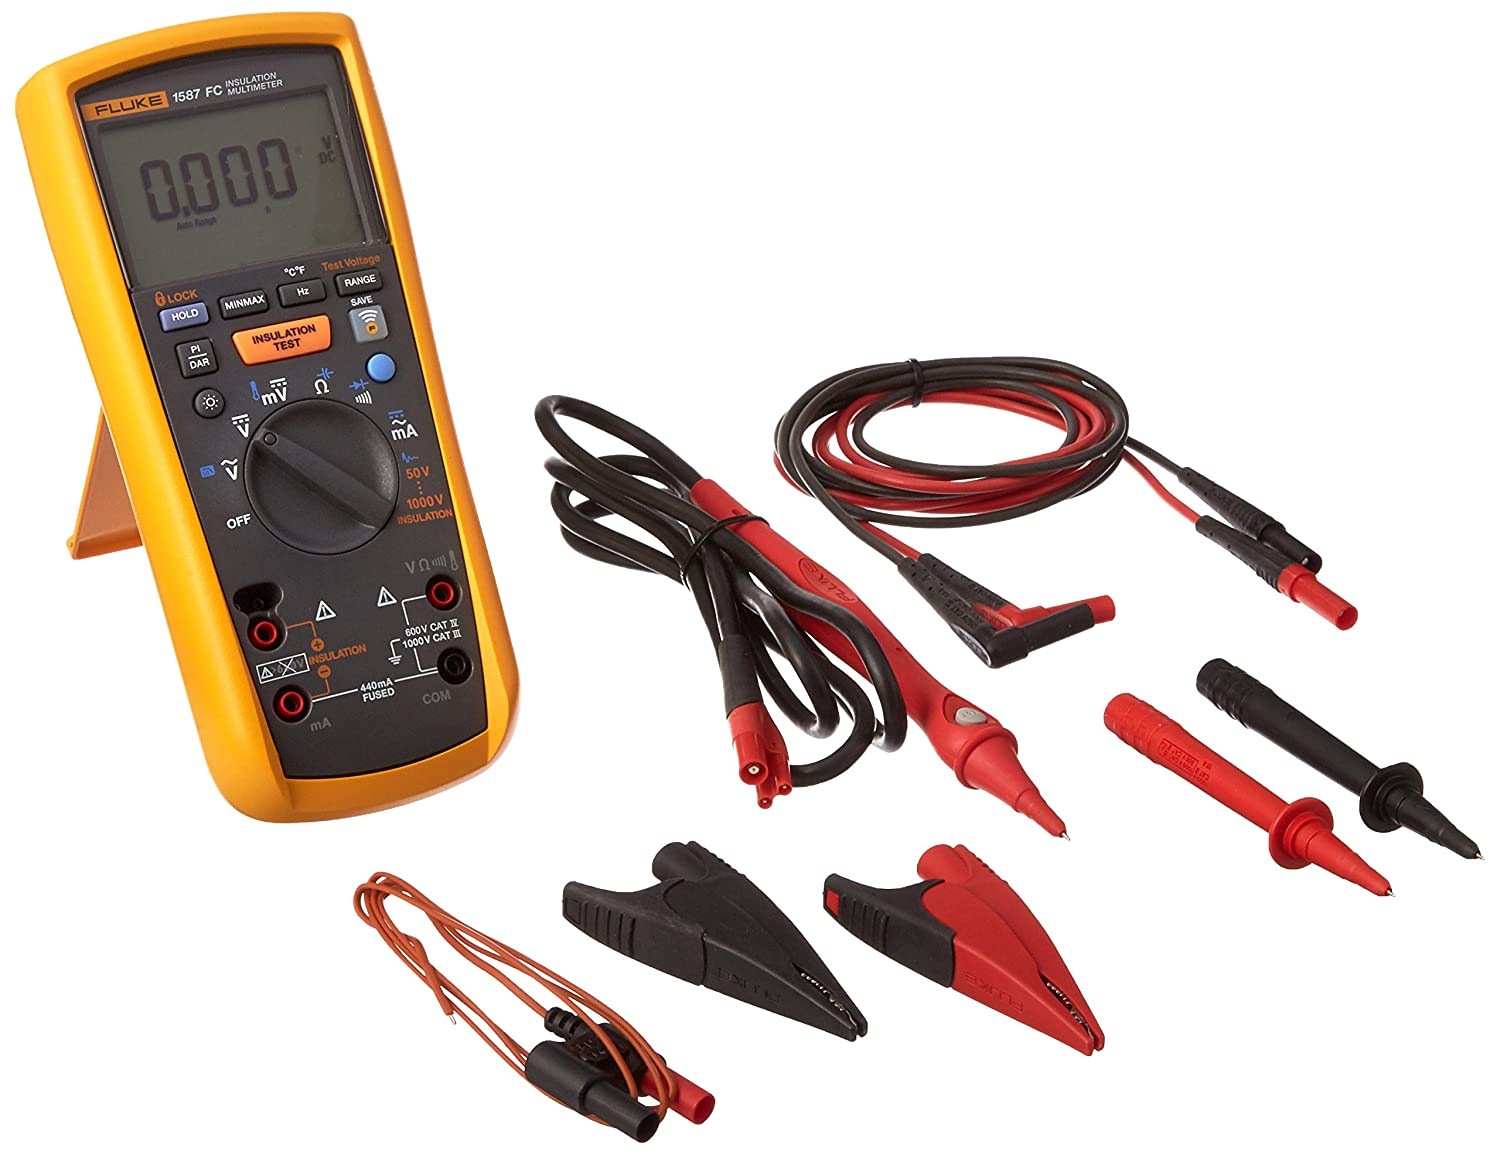 Fluke 1587 Insulation Multimeter Lcd Display 2 Gigaohms Circuit Tester If Further Assistance Is Needed Our Certified Car Resistance Up To 1000v Test Voltage Multi Testers Industrial